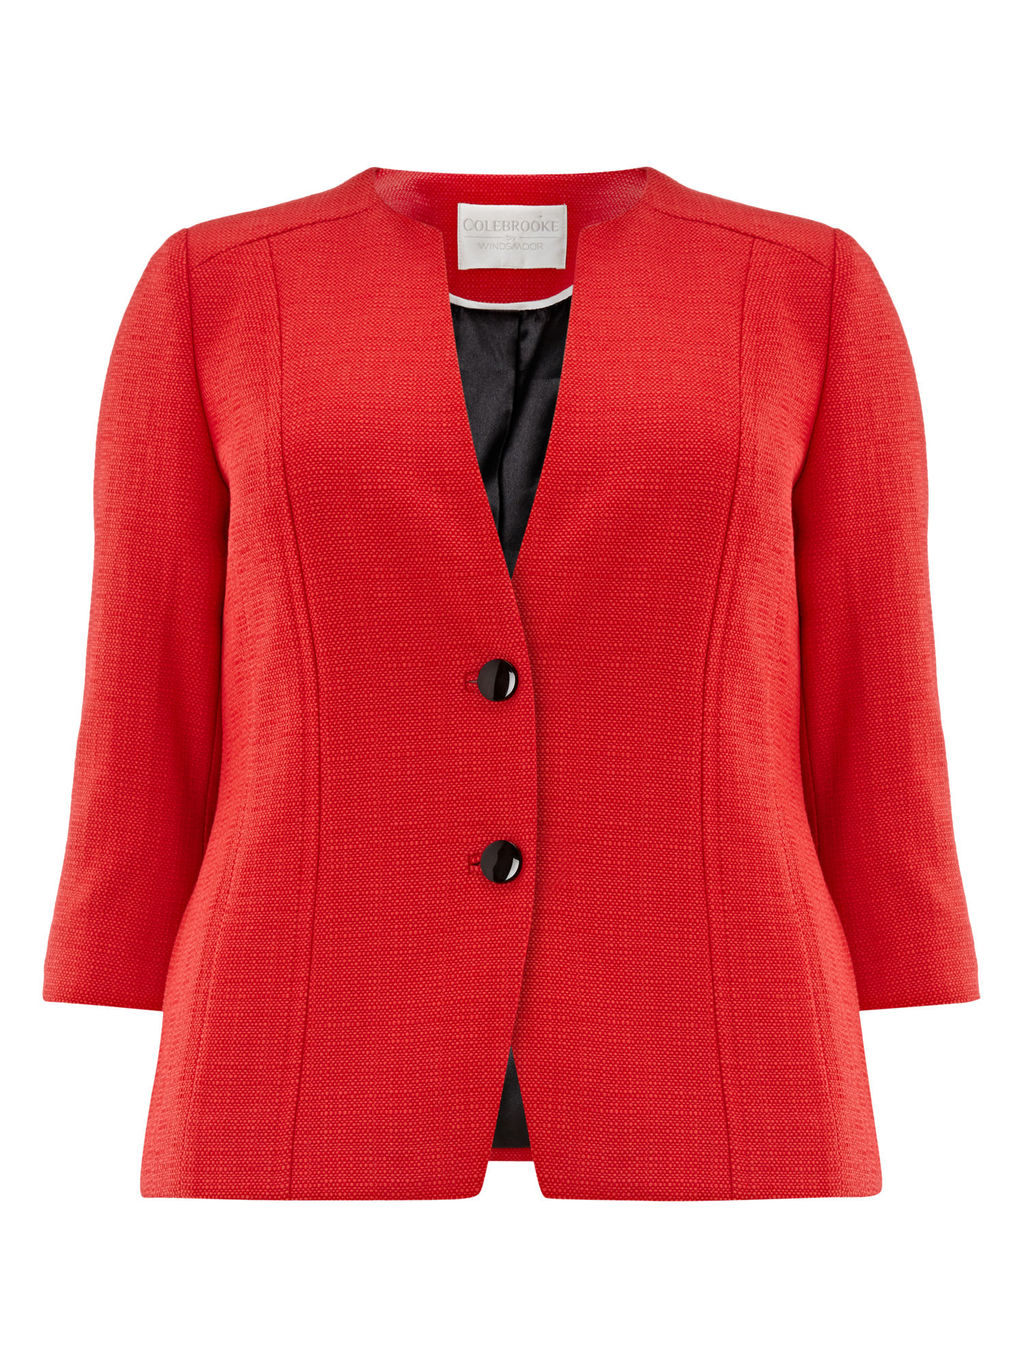 Textured Jacket, Red - pattern: plain; style: single breasted blazer; collar: round collar/collarless; predominant colour: true red; length: standard; fit: tailored/fitted; fibres: cotton - mix; occasions: occasion; sleeve length: 3/4 length; sleeve style: standard; collar break: medium; pattern type: fabric; texture group: woven light midweight; season: a/w 2015